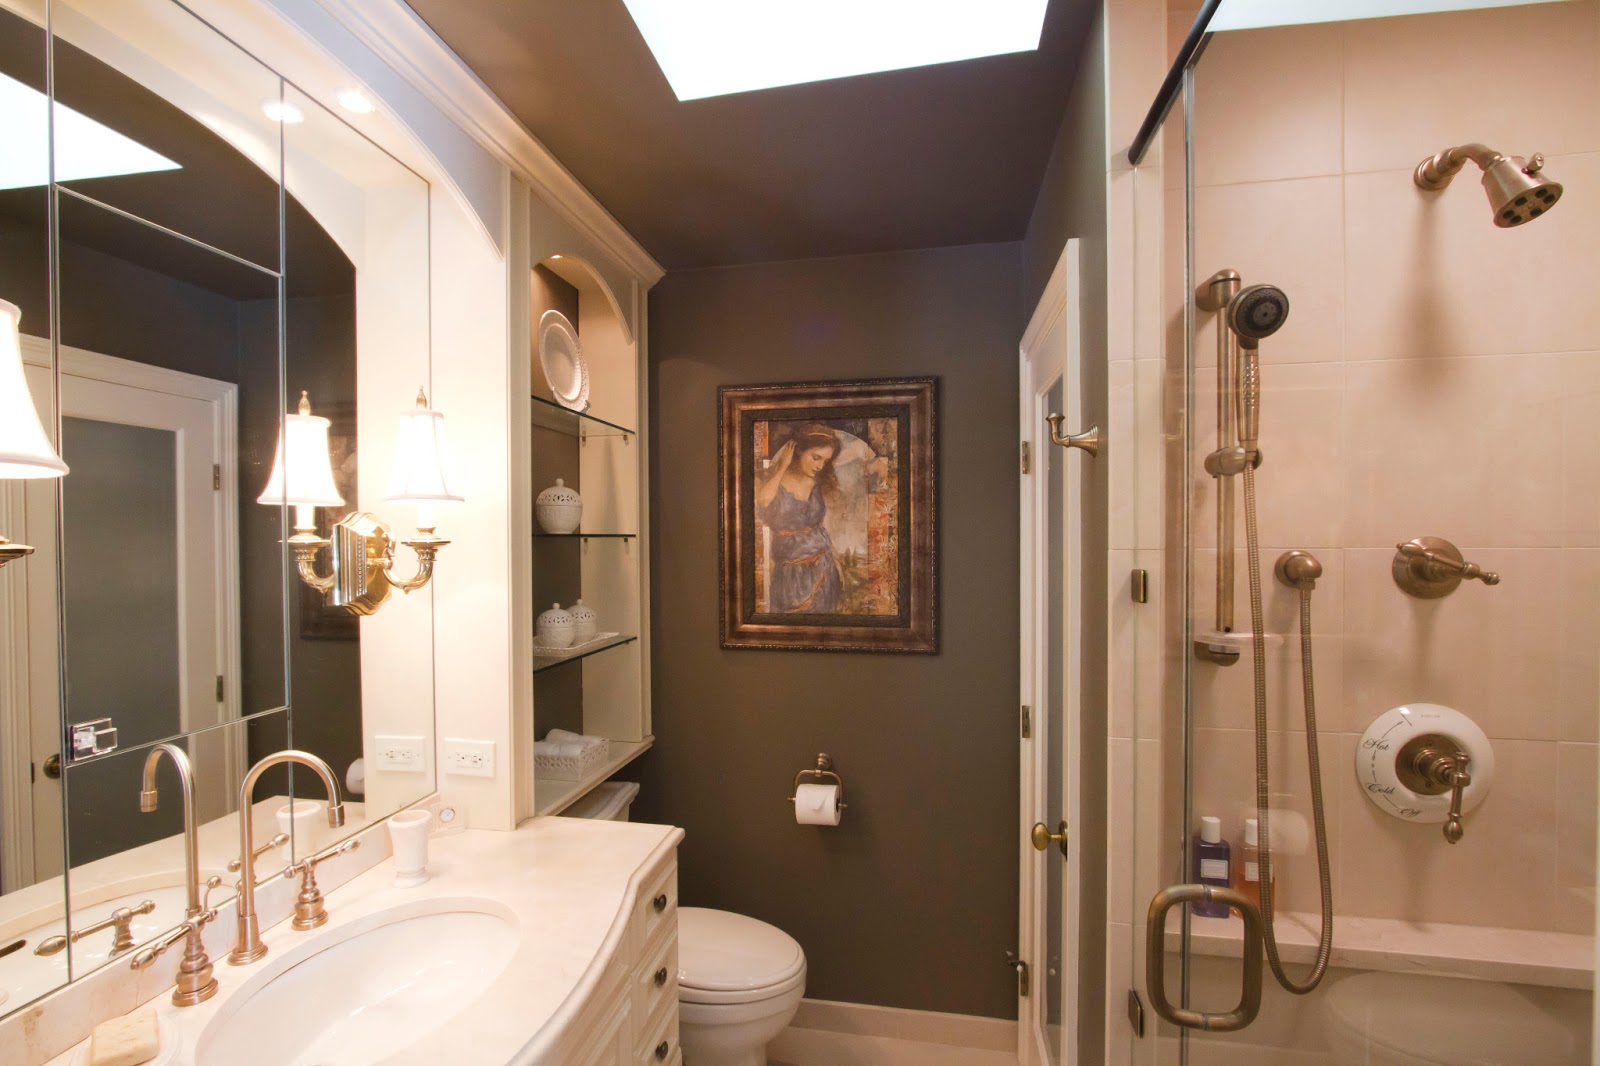 Design Ideas For A Small Bathroom Remodel ~ Archaic bathroom design ideas for small homes home